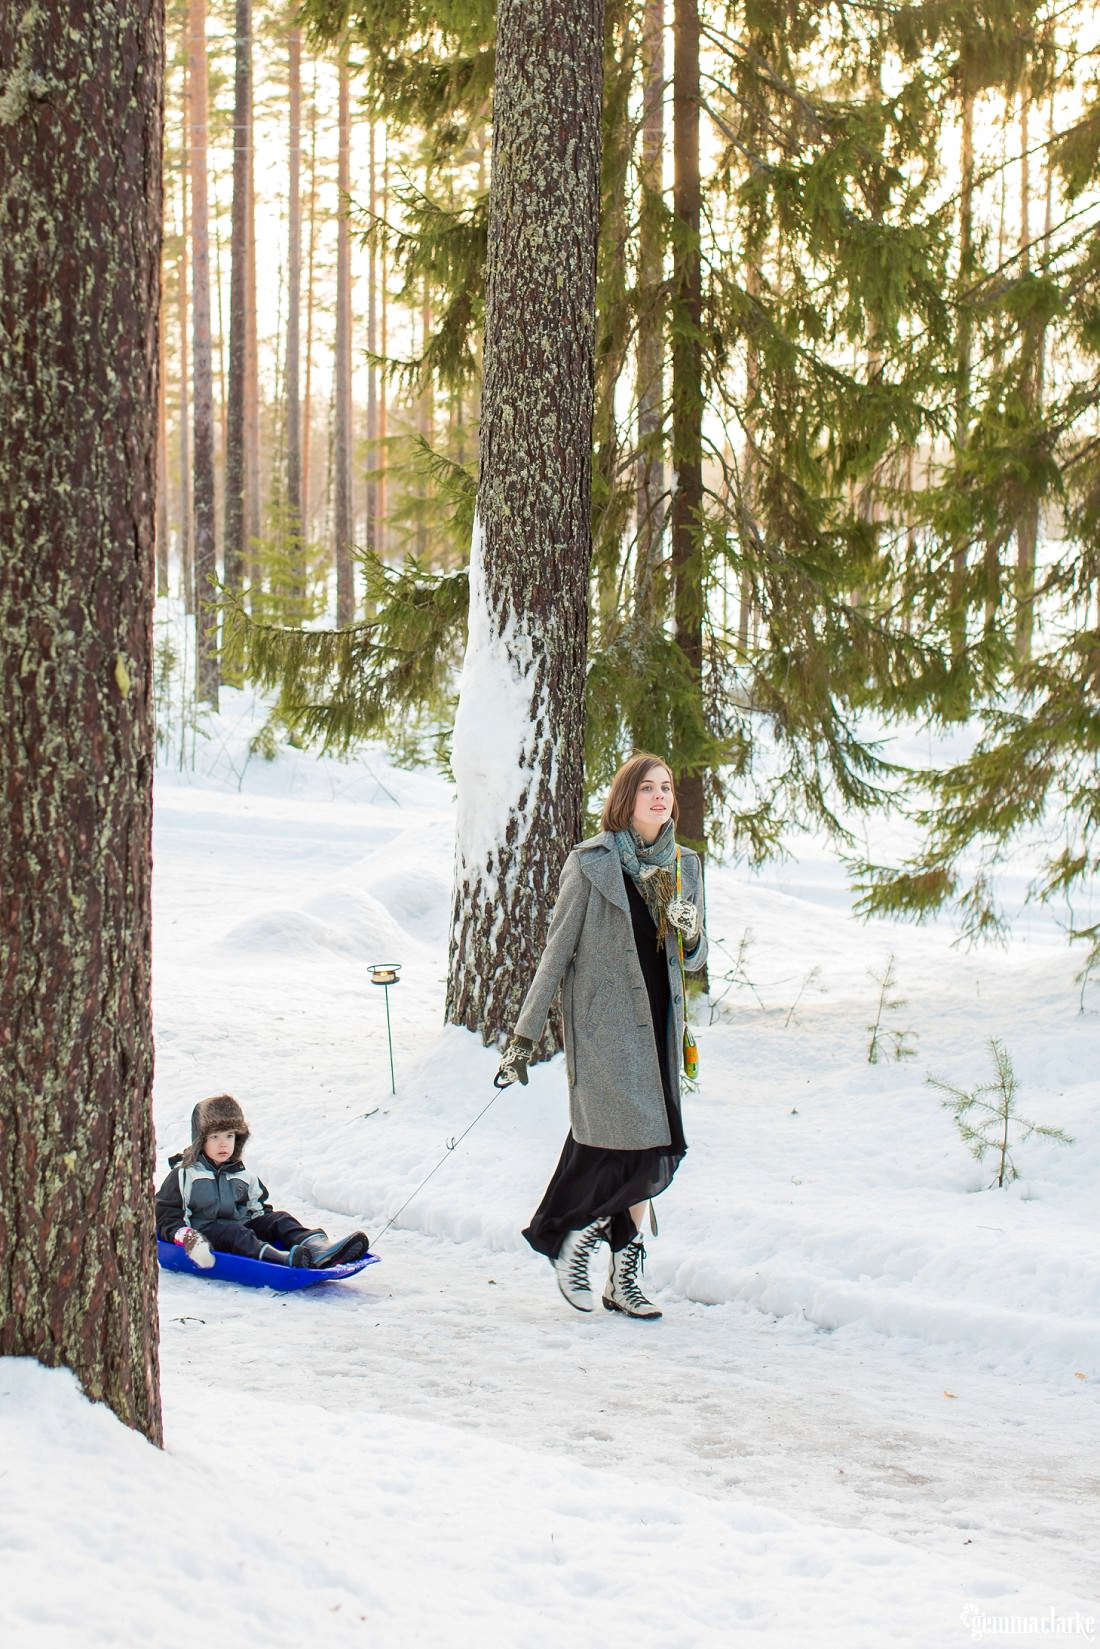 A woman pulling a young boy through snowy forest in a plastic toboggan